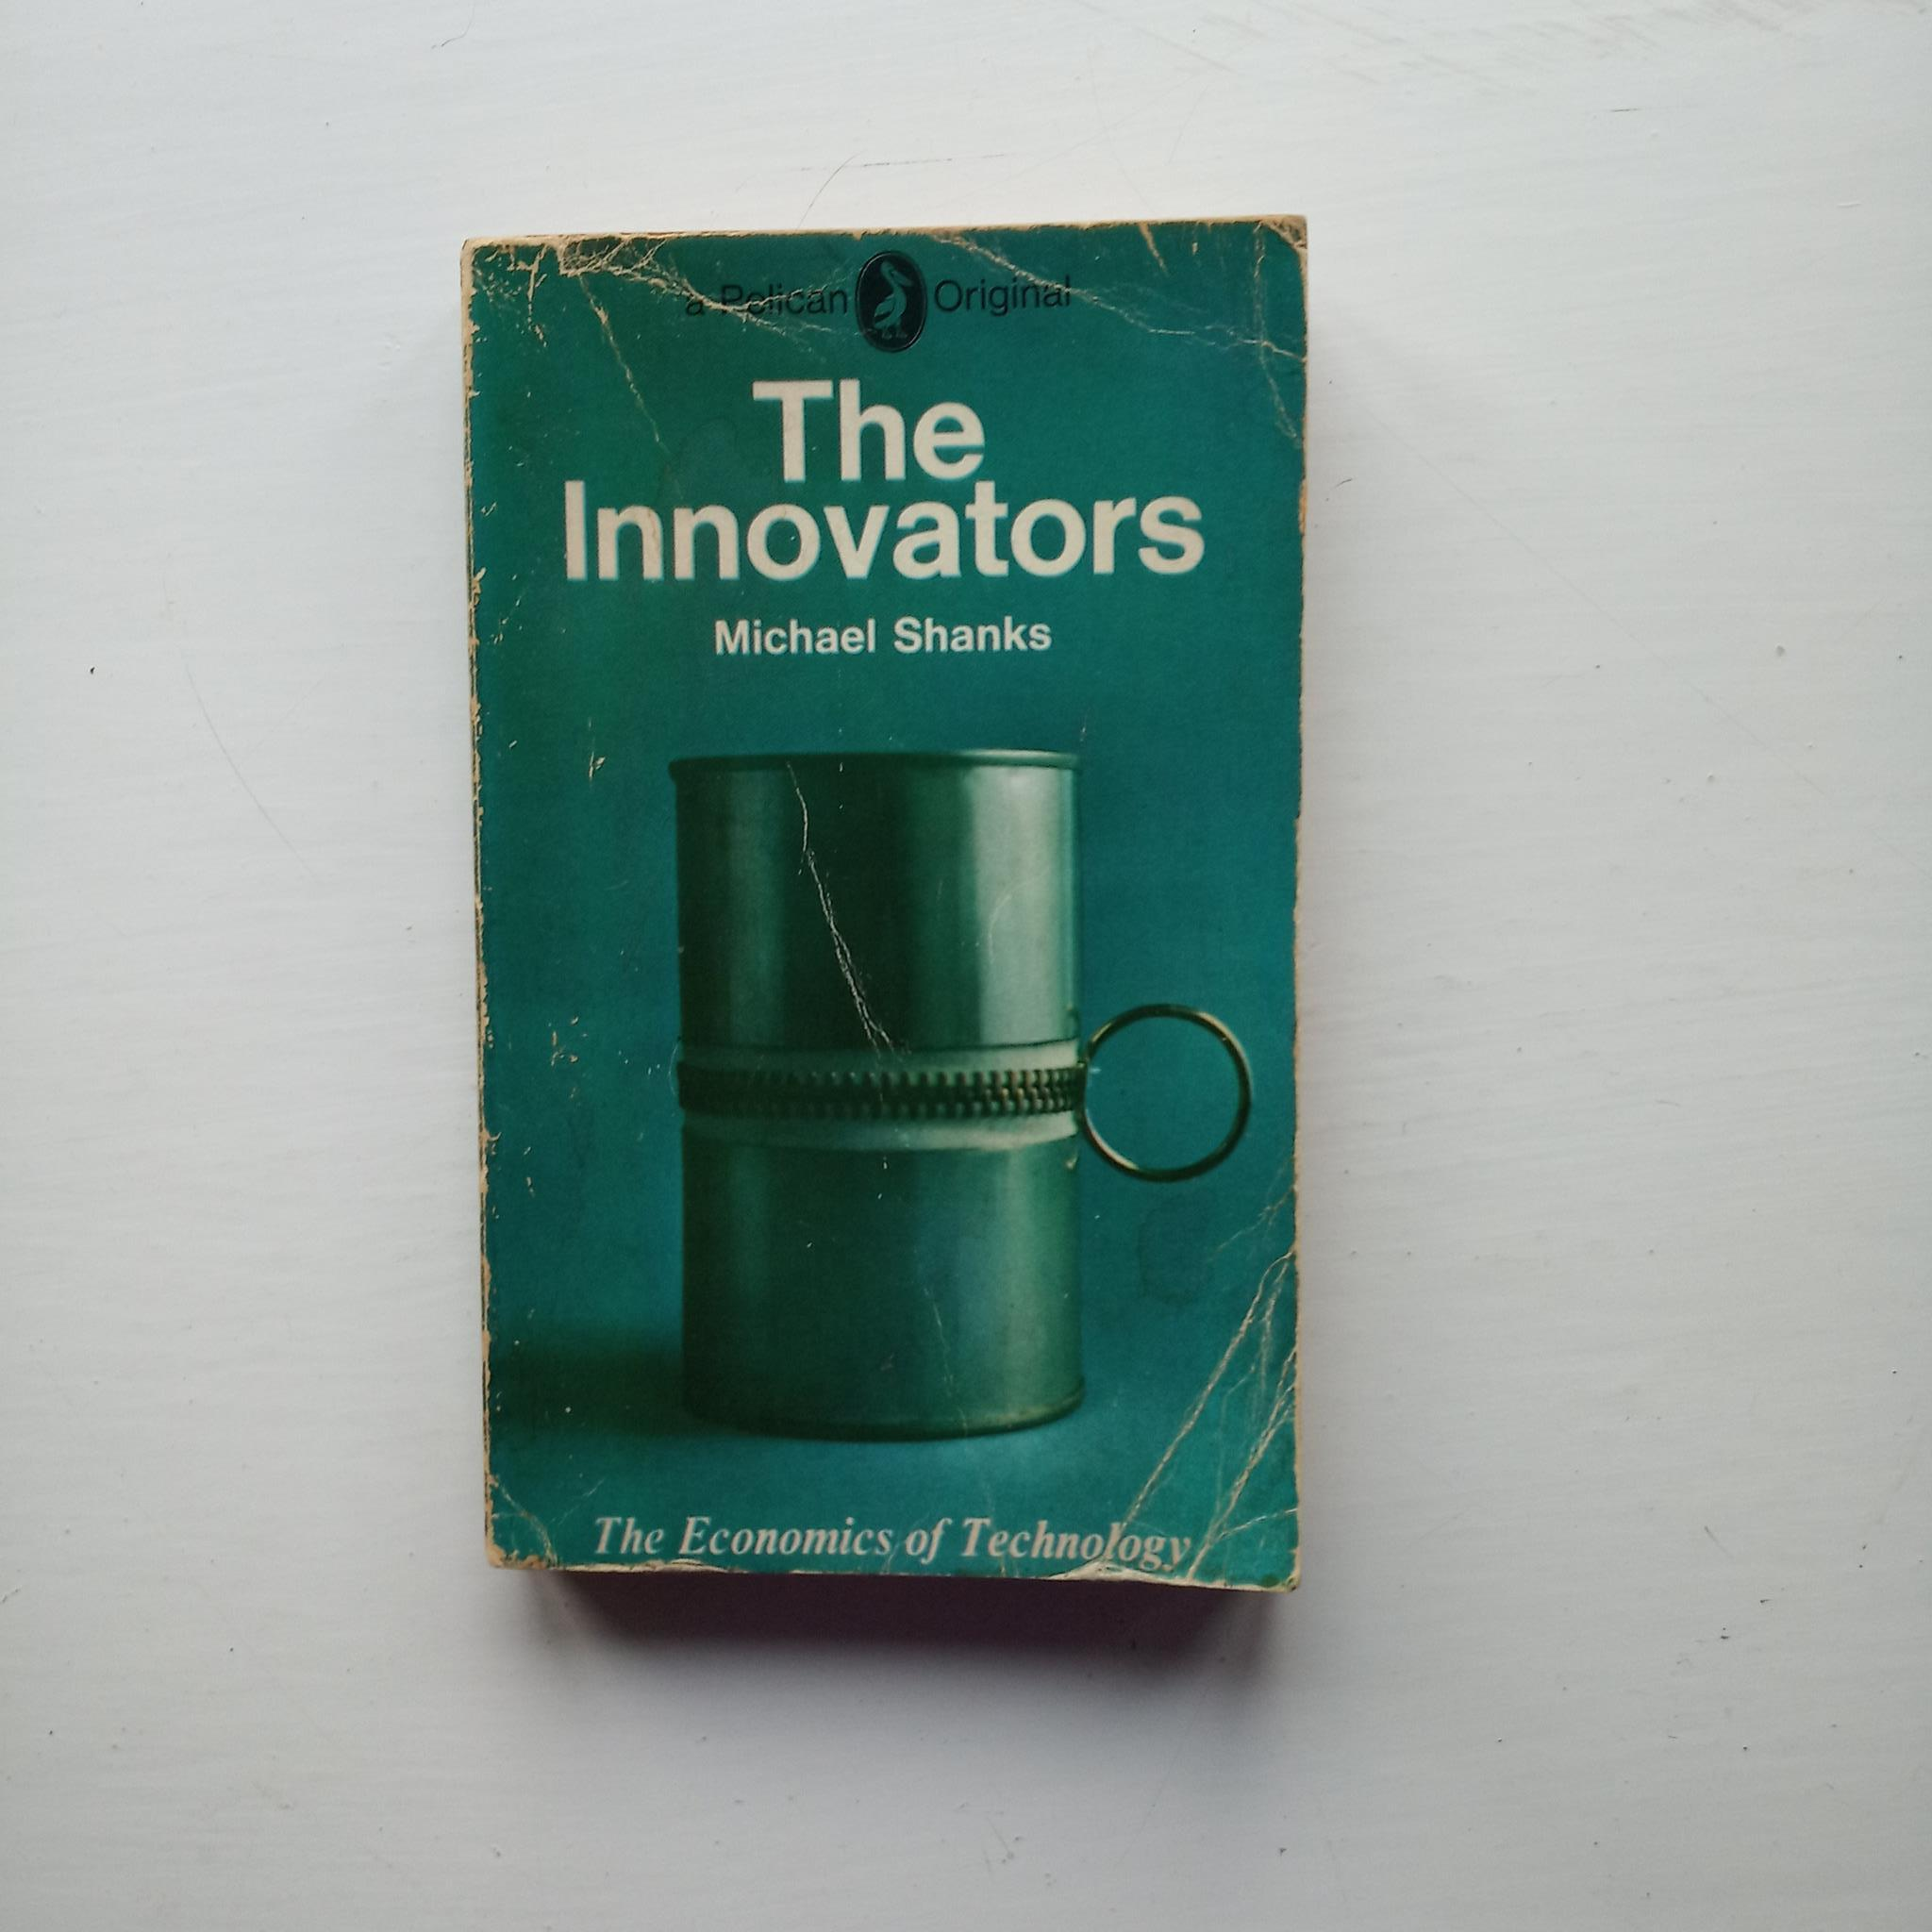 The Innovators by Michael Shanks